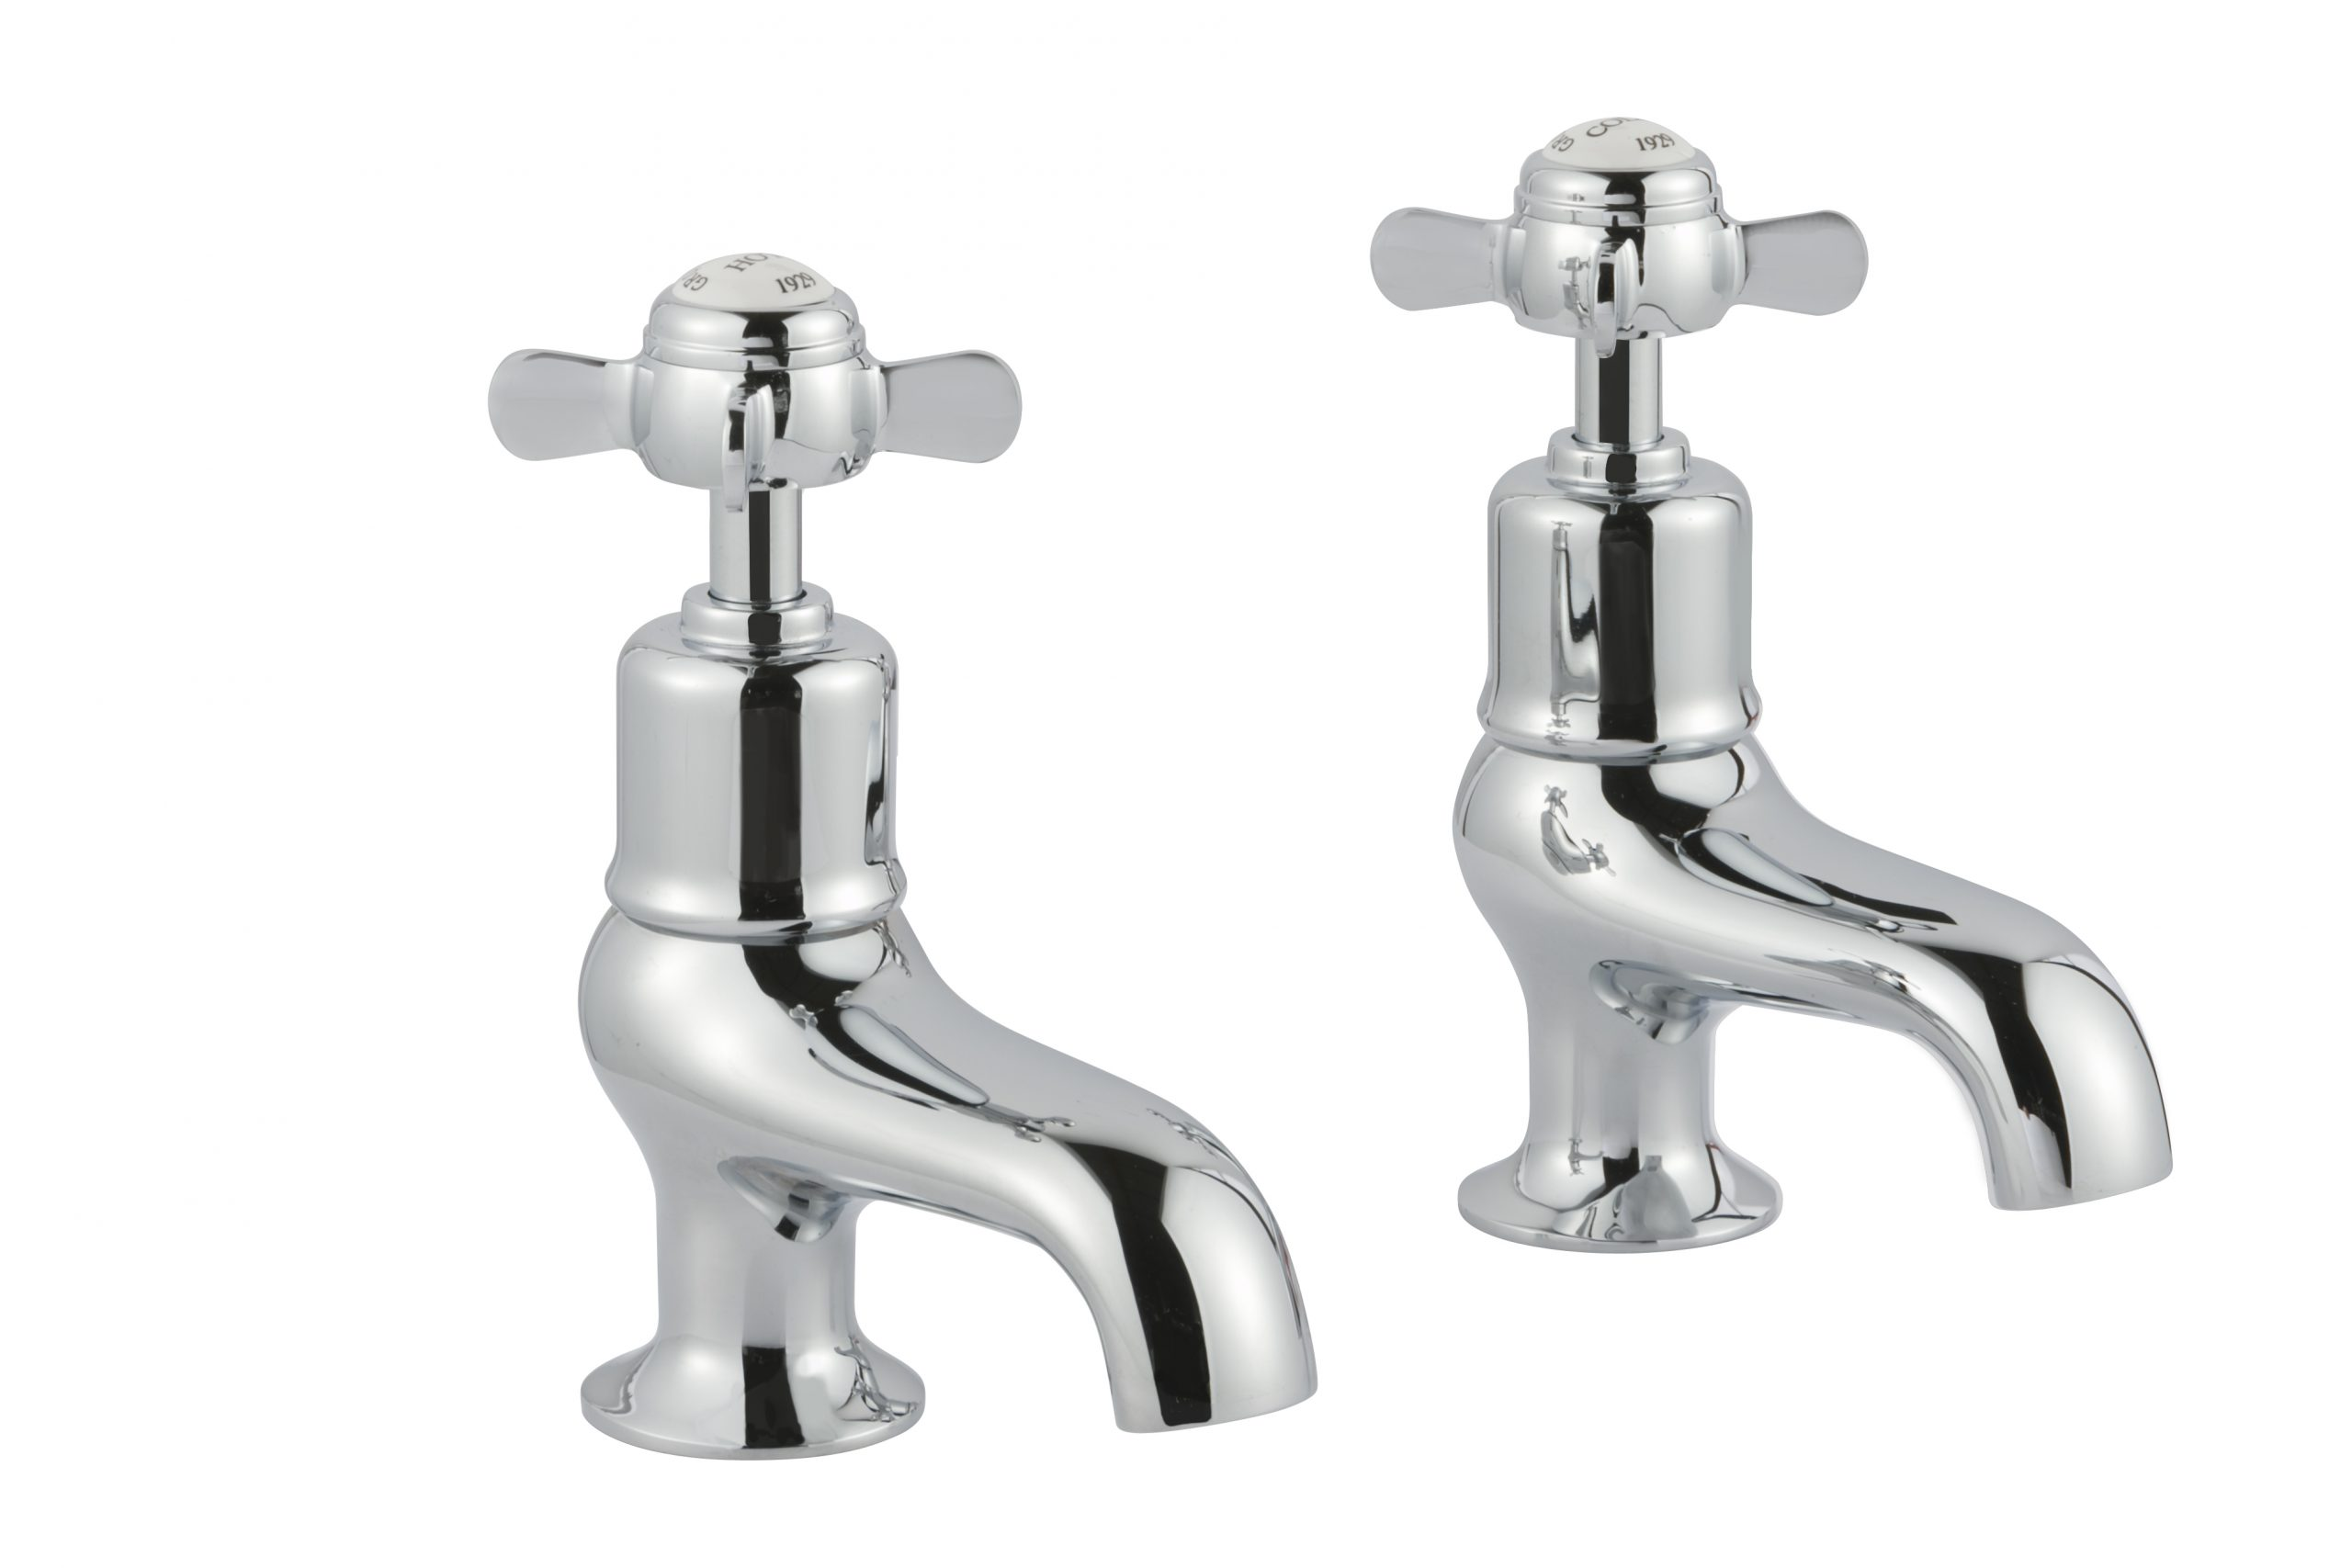 Grosvenor Pinch Bath Taps